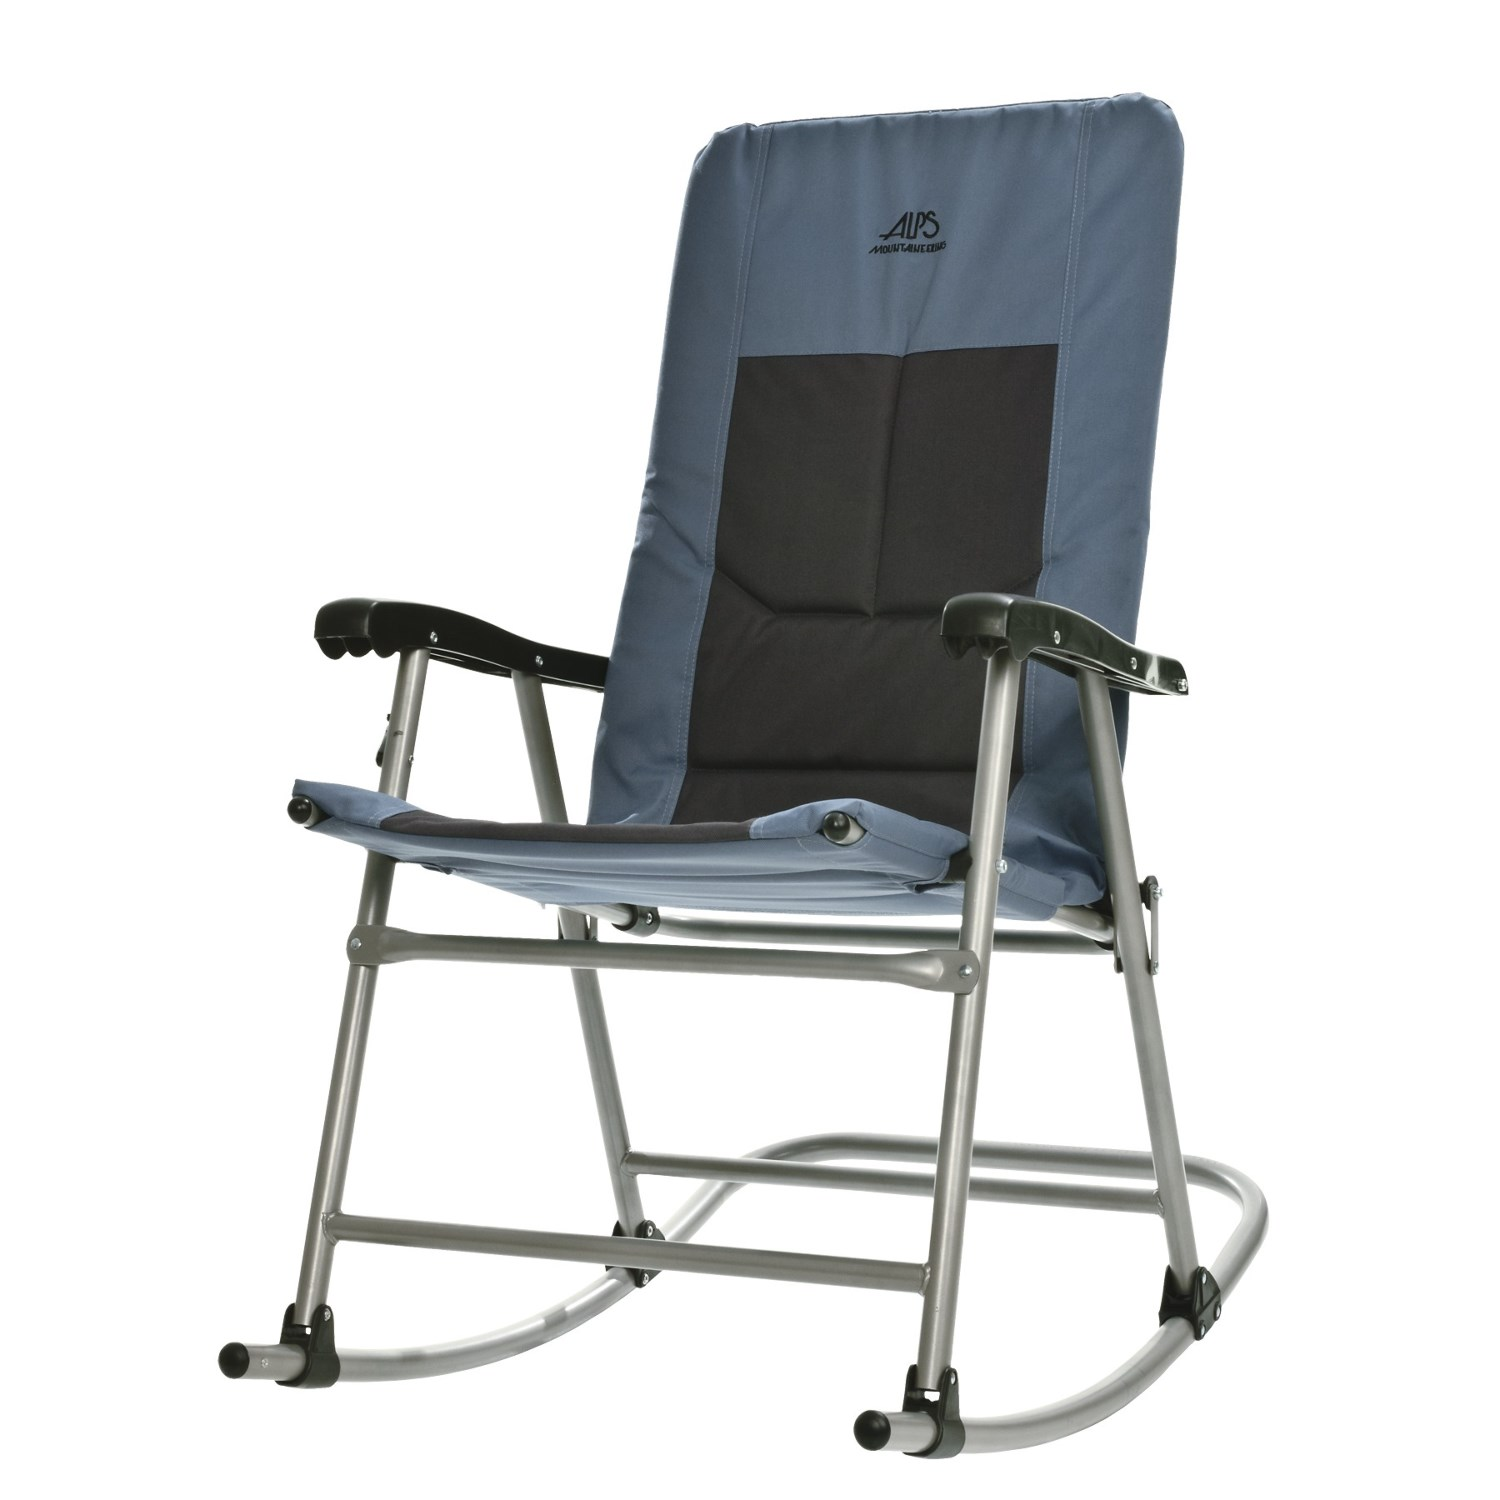 $%ALPS Mountaineering Rocking Chair best price Camping & Hiking Price